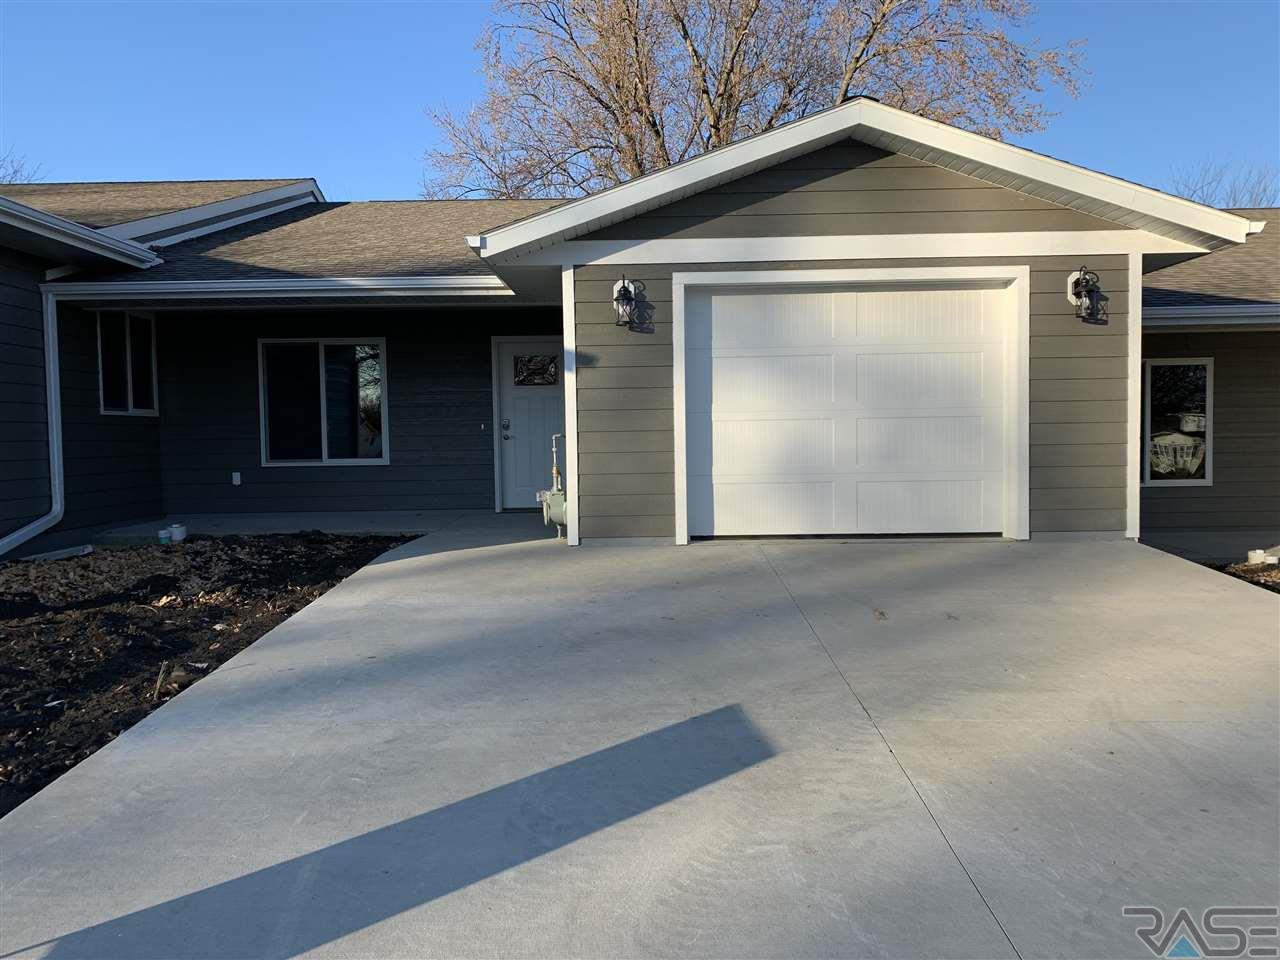 106 W Barck Ave MN 56156